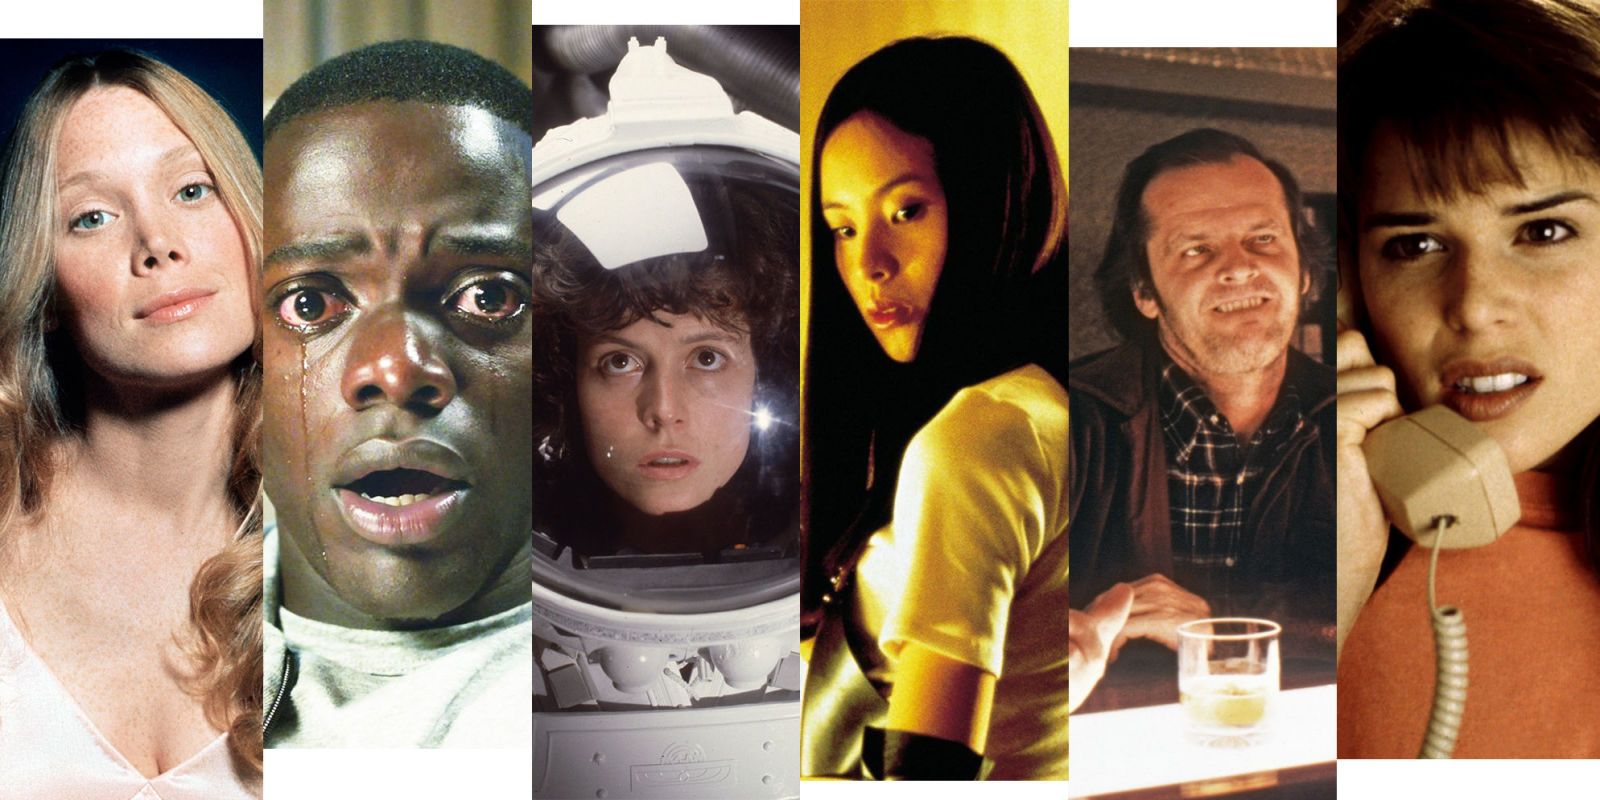 The 50 Scariest Movies of All Time